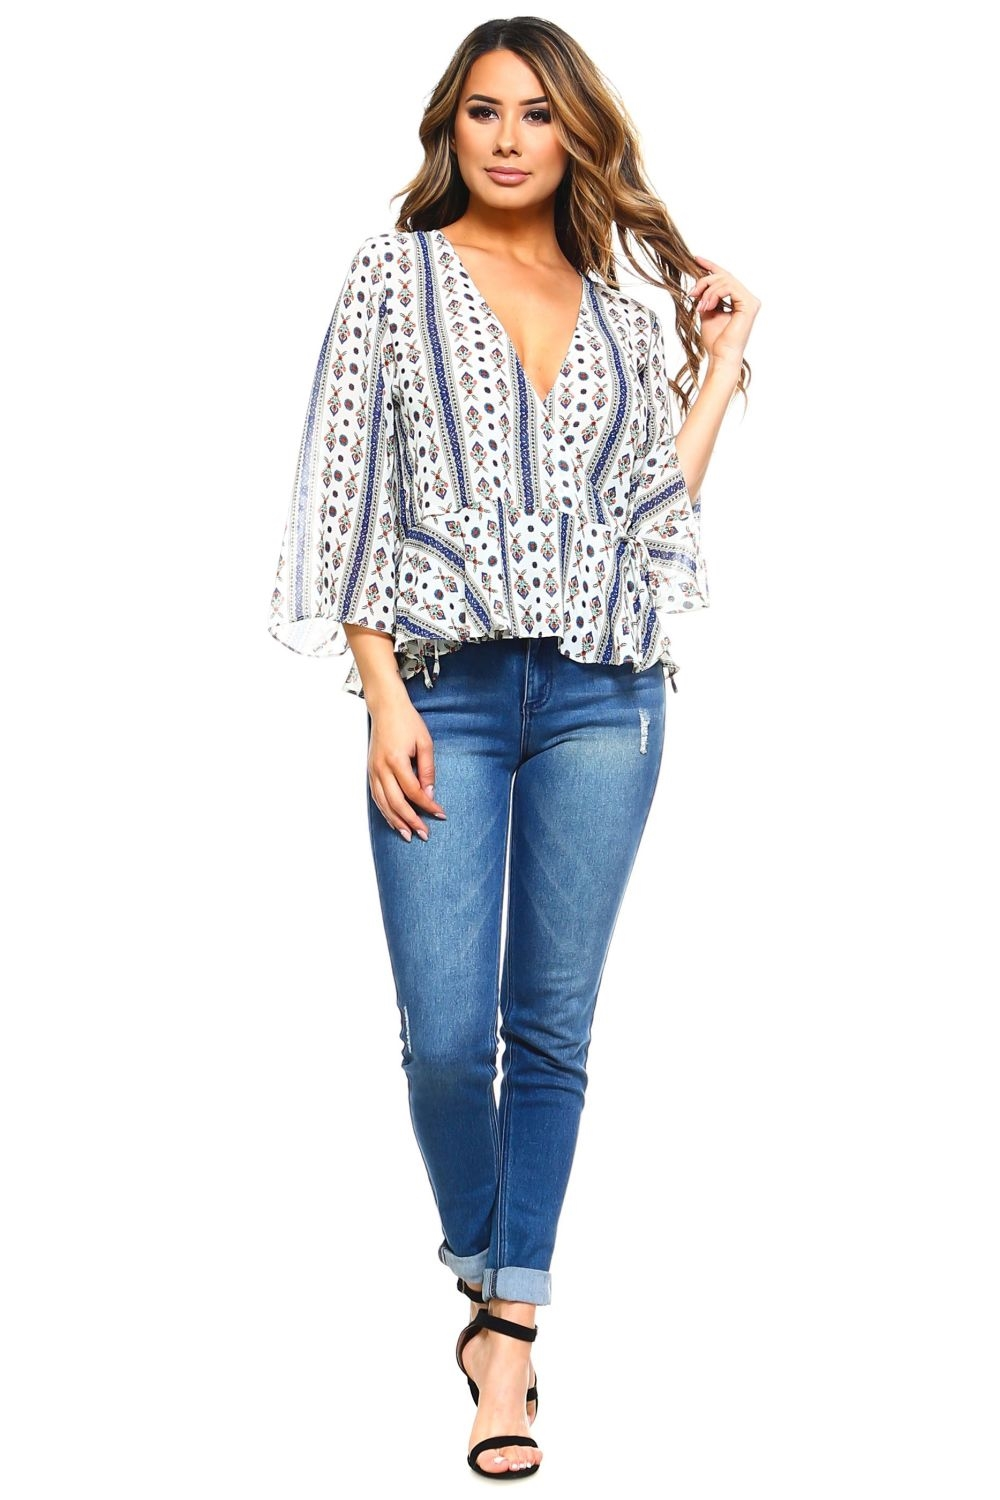 45f1899bd838ca Wholesale Women's Plus Size Abstract Print Bell Sleeve V Neck Peplum ...